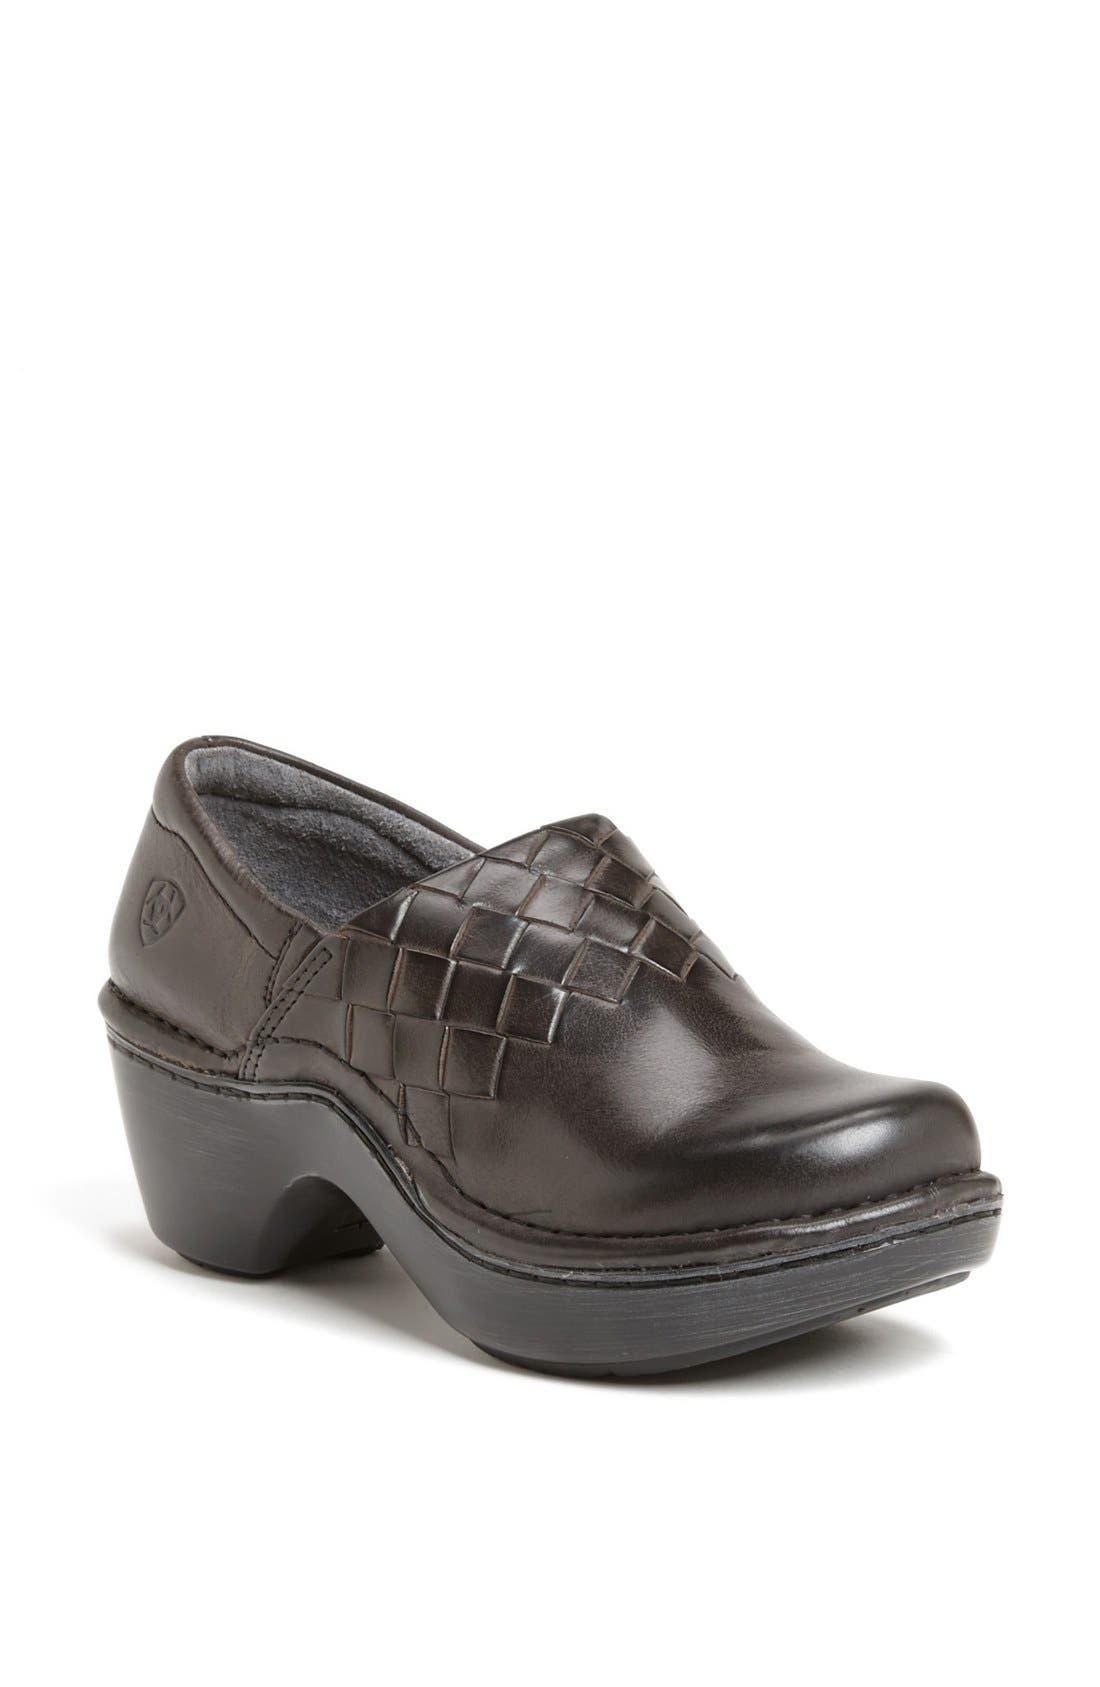 Main Image - Ariat 'Ashbourne' Woven Leather Clog